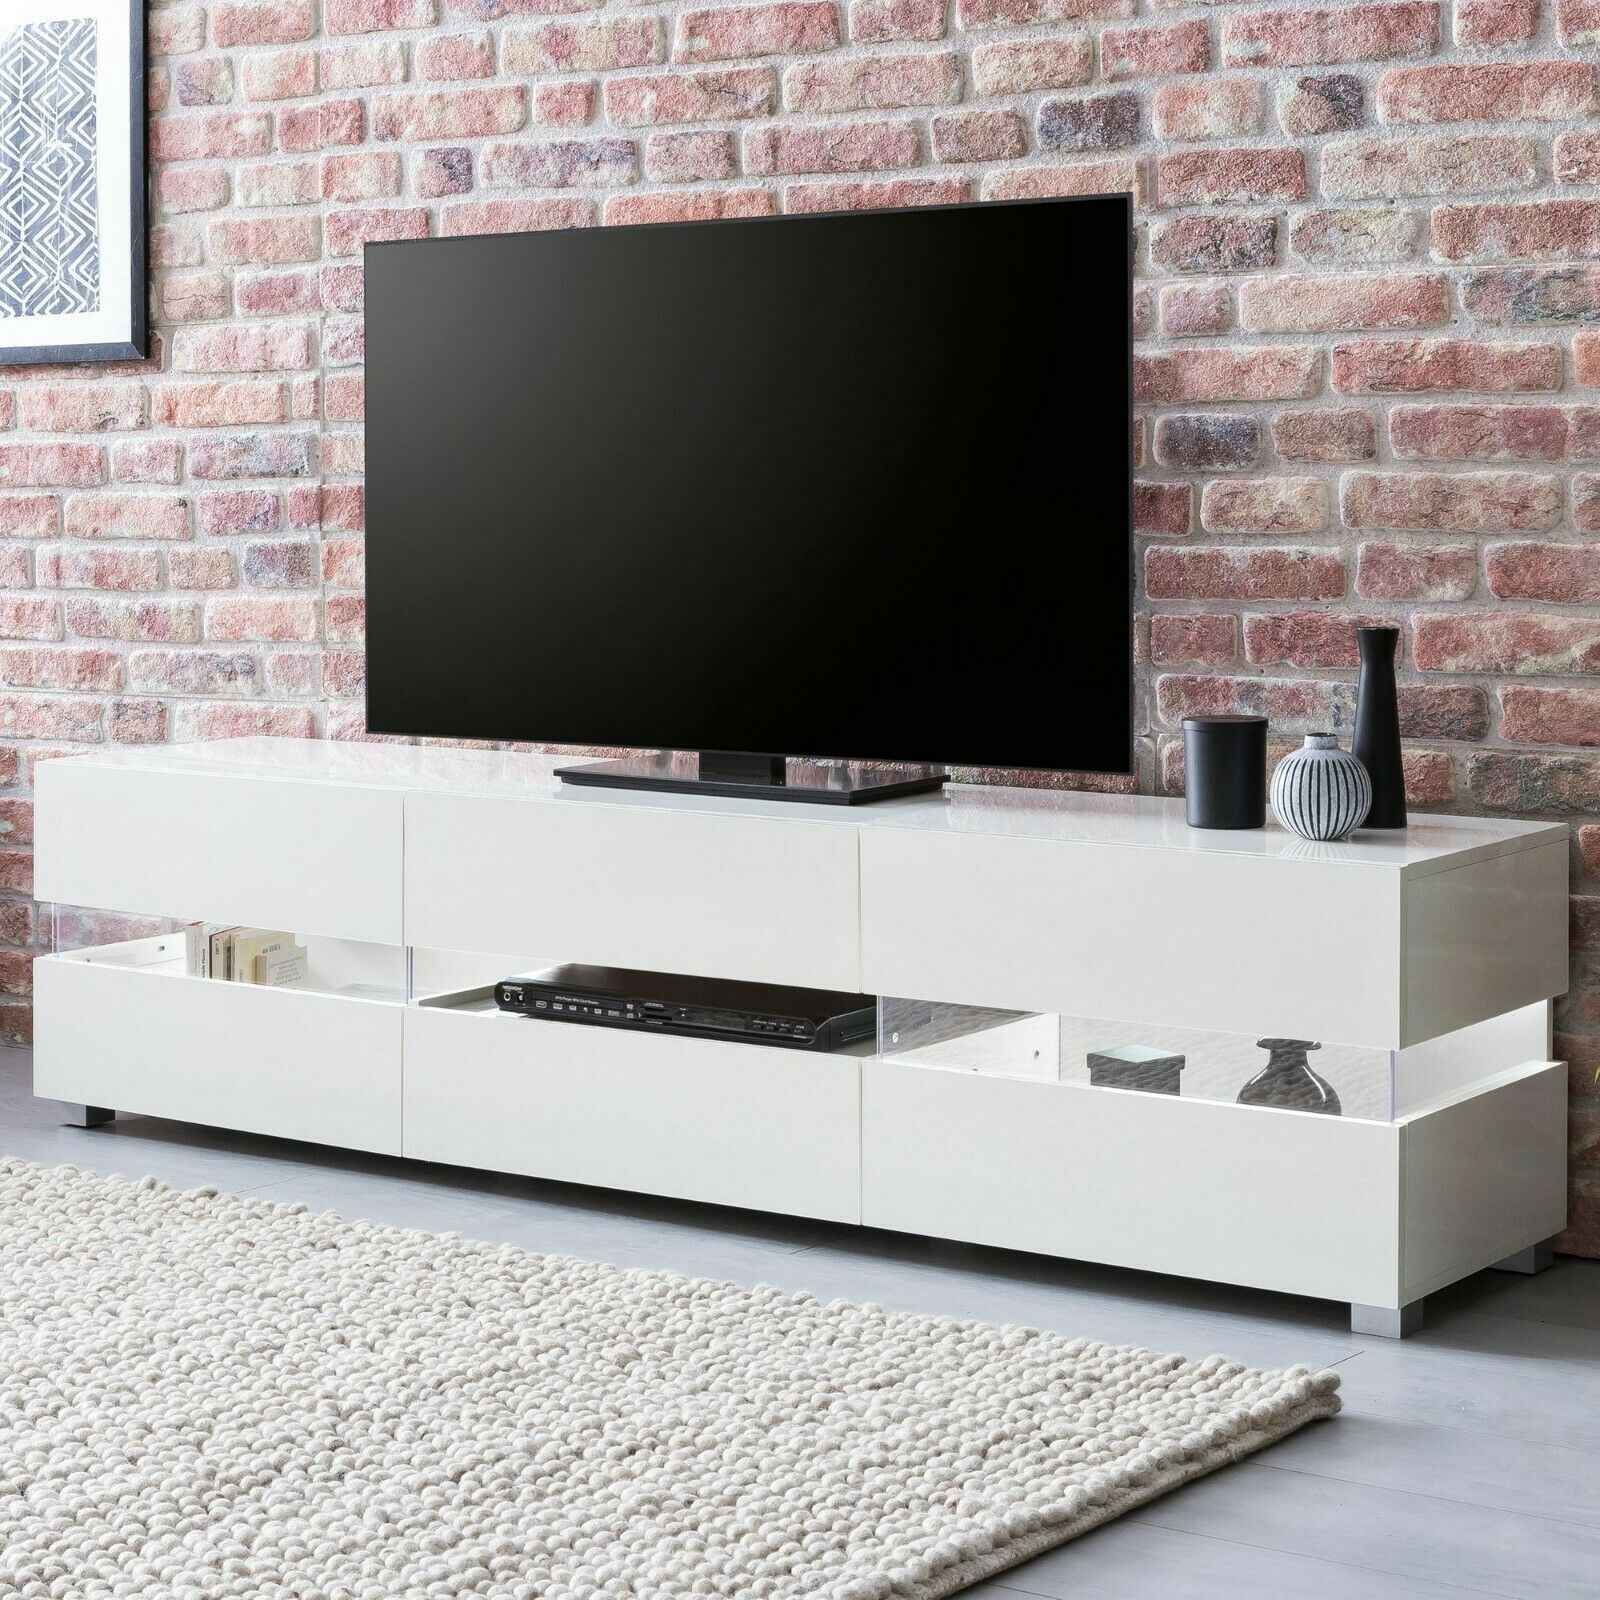 weiss hochglanz tv lowboard regal fernsehregal tv m bel. Black Bedroom Furniture Sets. Home Design Ideas